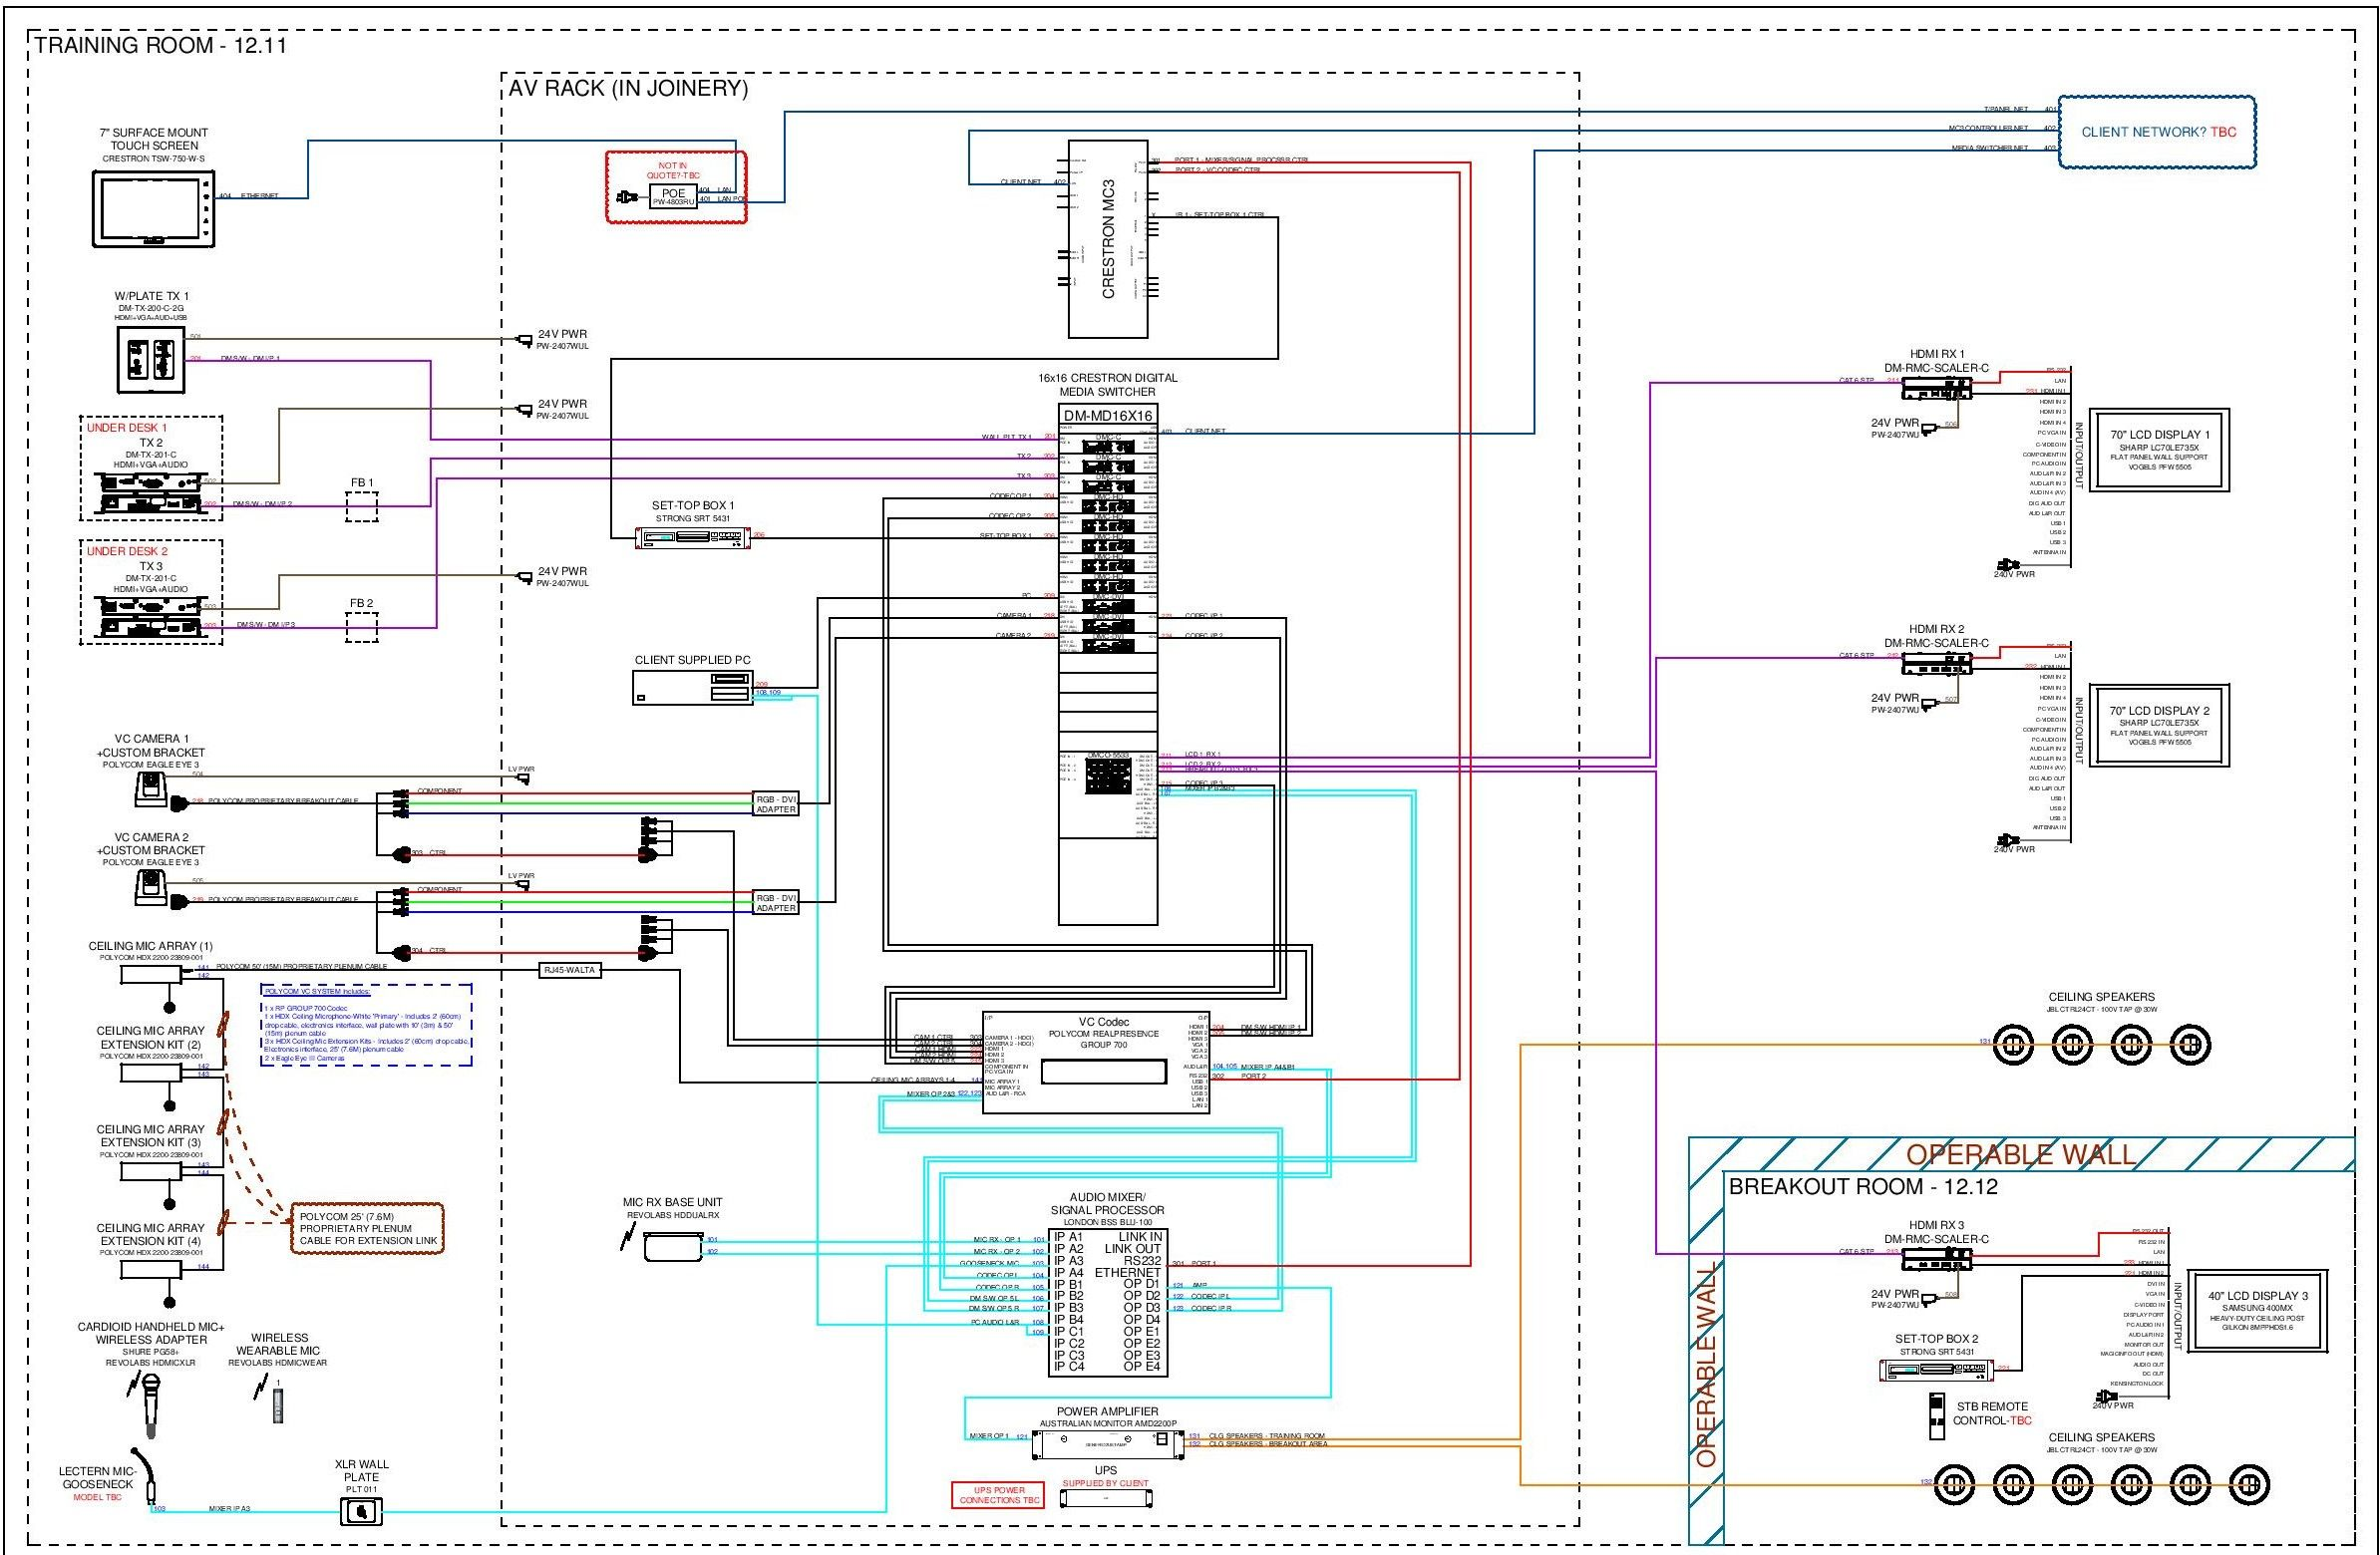 AV Wiring schematic - Training room system with Operable Walls Cad Services Design Services